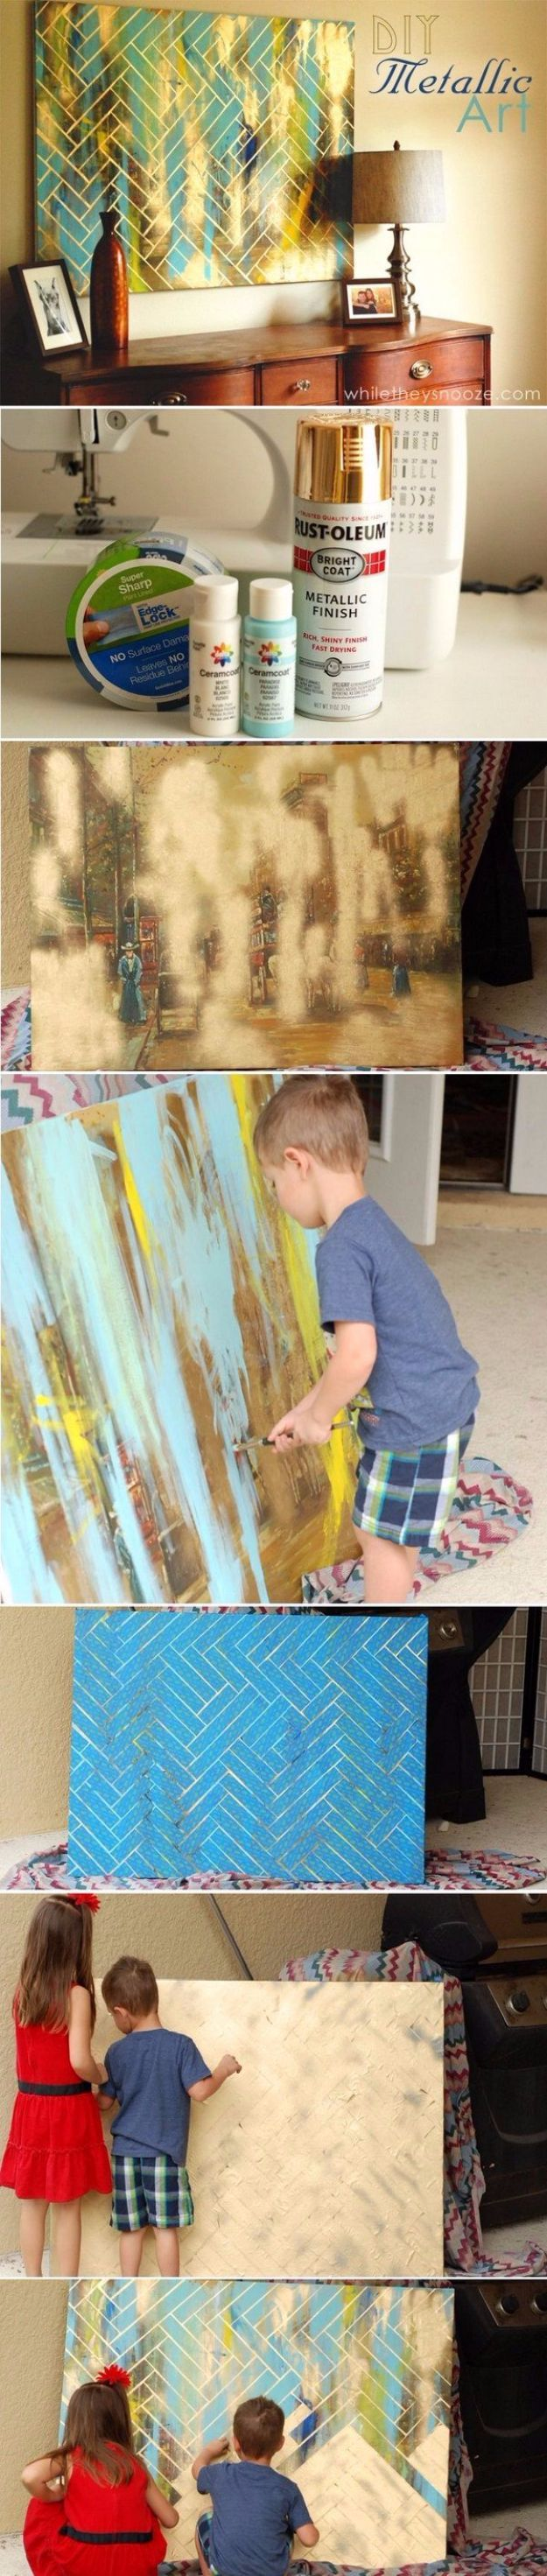 DIY Canvas Painting Ideas - DIY Herringbone Metallic Artwork - Cool and Easy Wall Art Ideas You Can Make On A Budget - Creative Arts and Crafts Ideas for Adults and Teens - Awesome Art for Living Room, Bedroom, Dorm and Apartment Decorating http://diyjoy.com/diy-canvas-painting